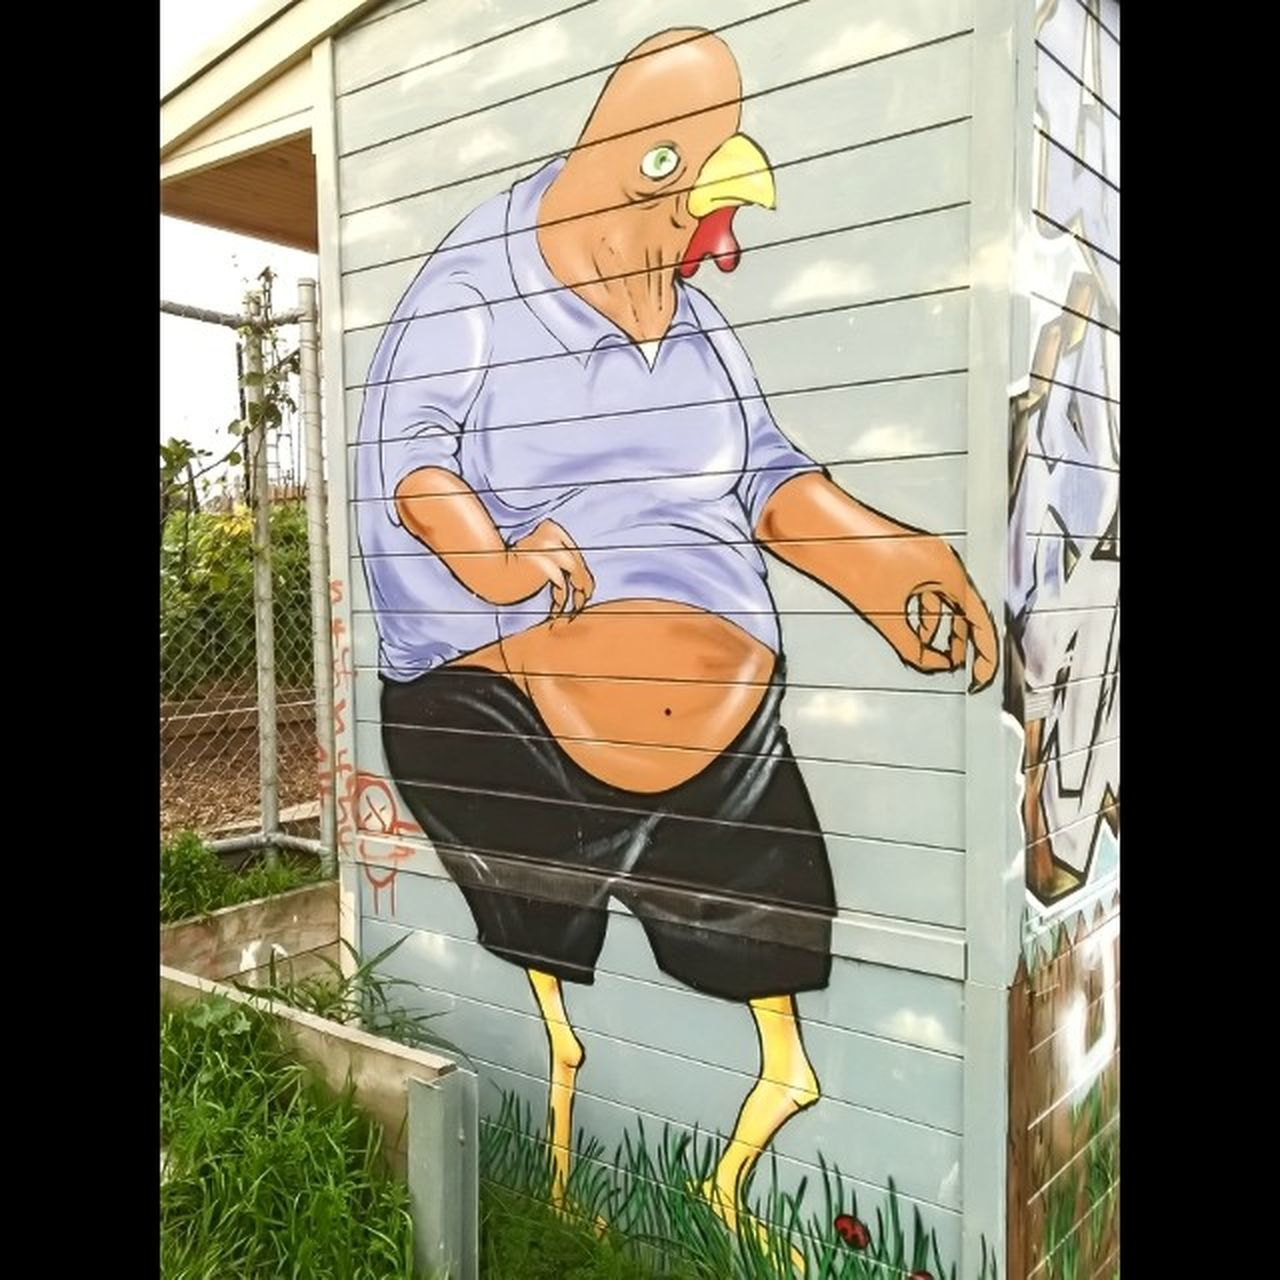 Chickenman Streetart Communitygarden Northfitzroy lumia 930 nokia wpphoto wp8au @_connects